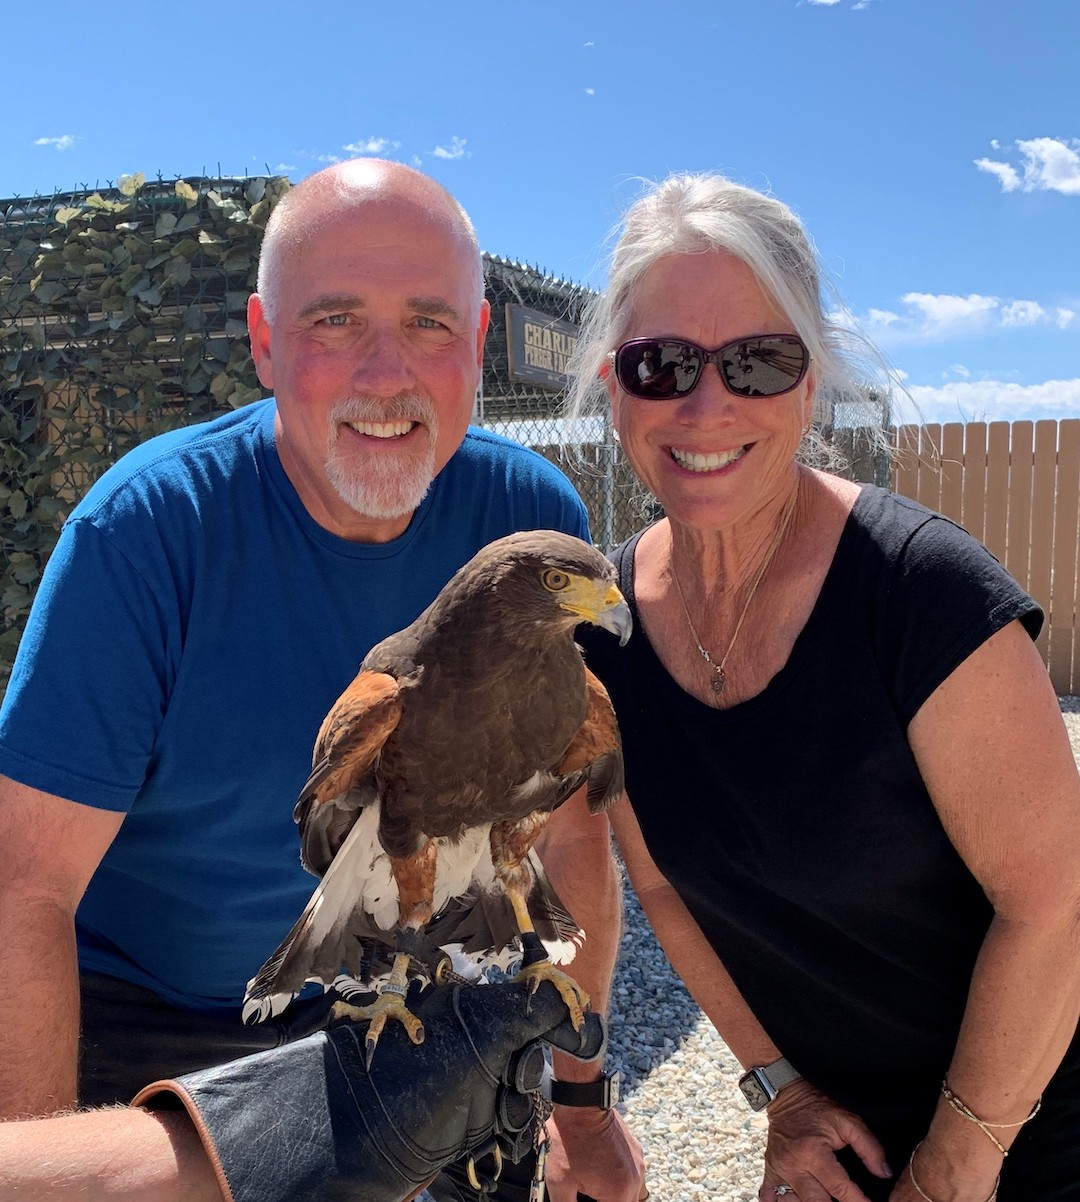 Dan Kumpf and wife with falcon.